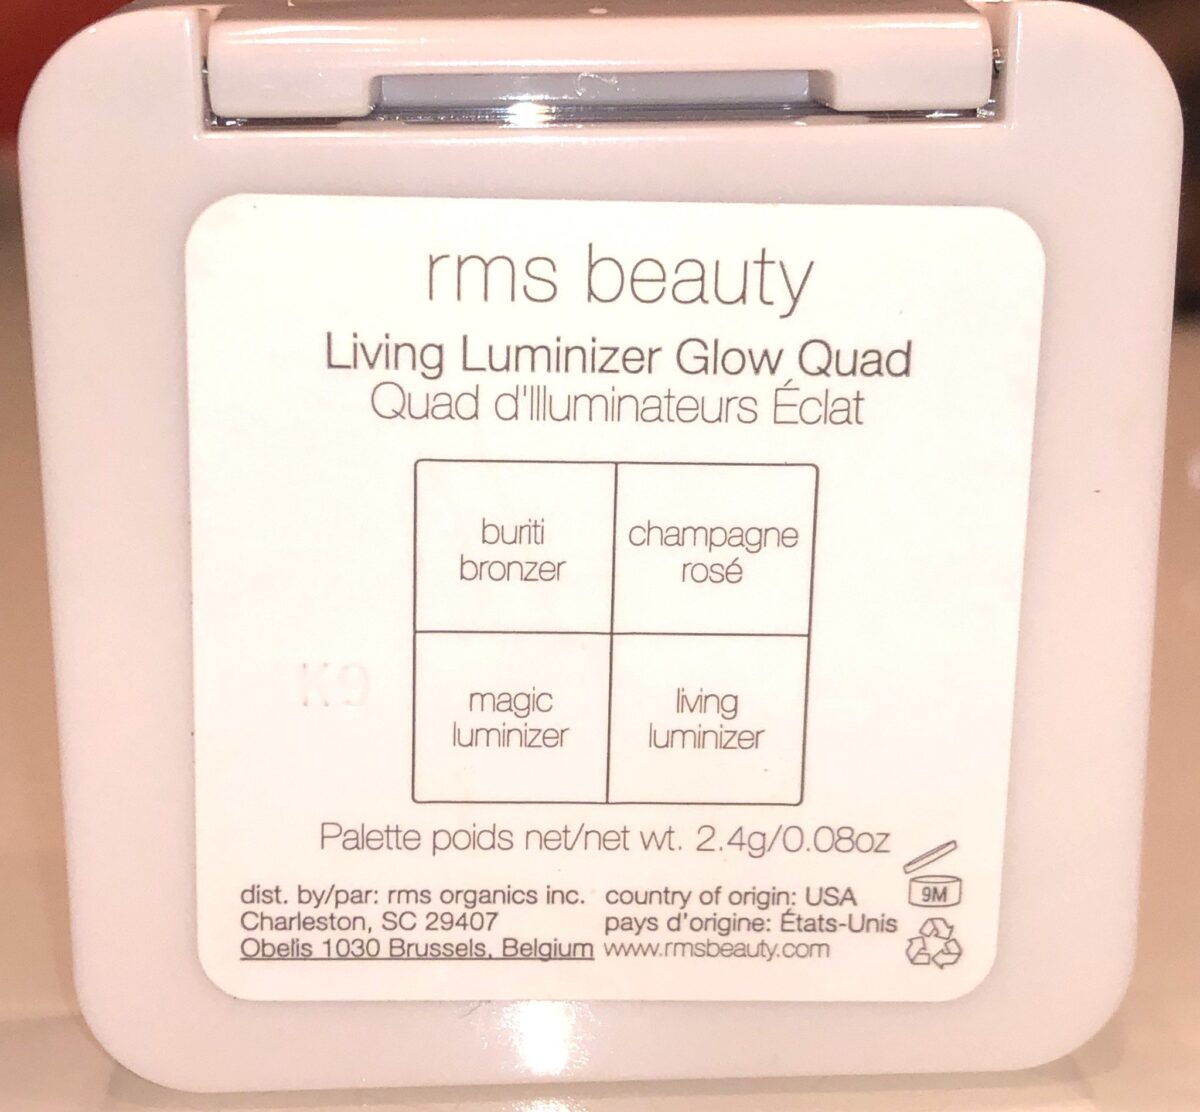 THE BACK OF THE RMS LIVING LUMINIZER GLOW QUAD MINI